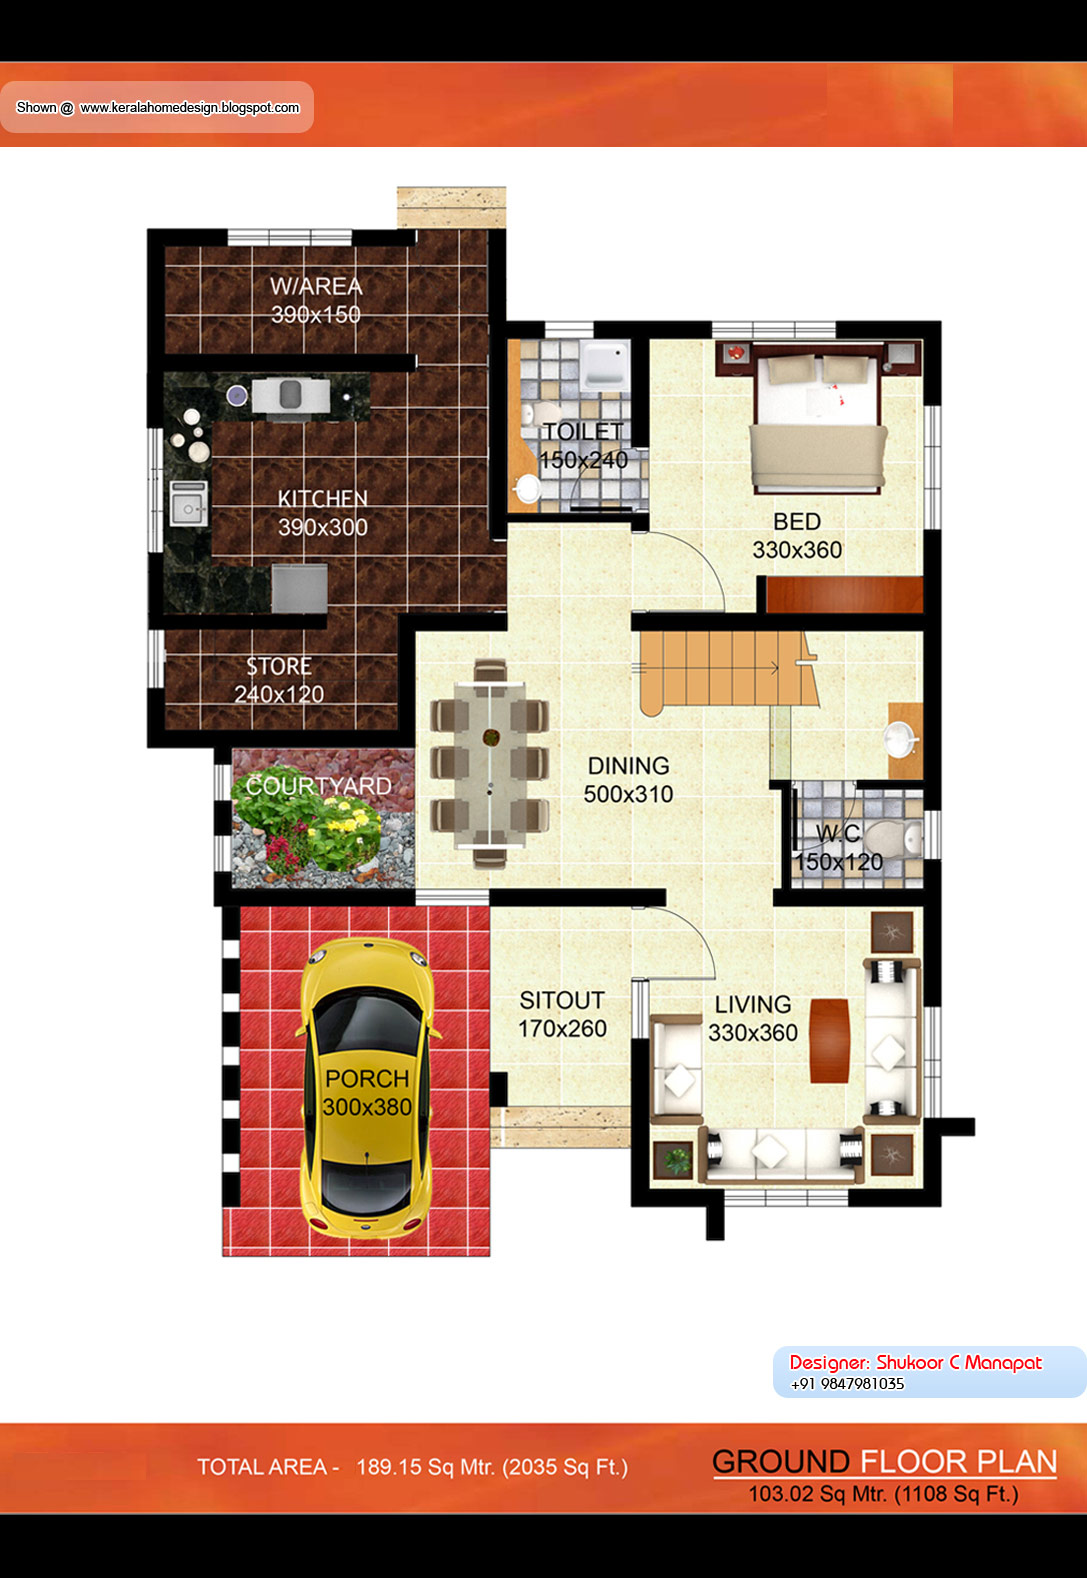 Kerala villa plan 2035 sq ft kerala home design and for Villa designs and floor plans